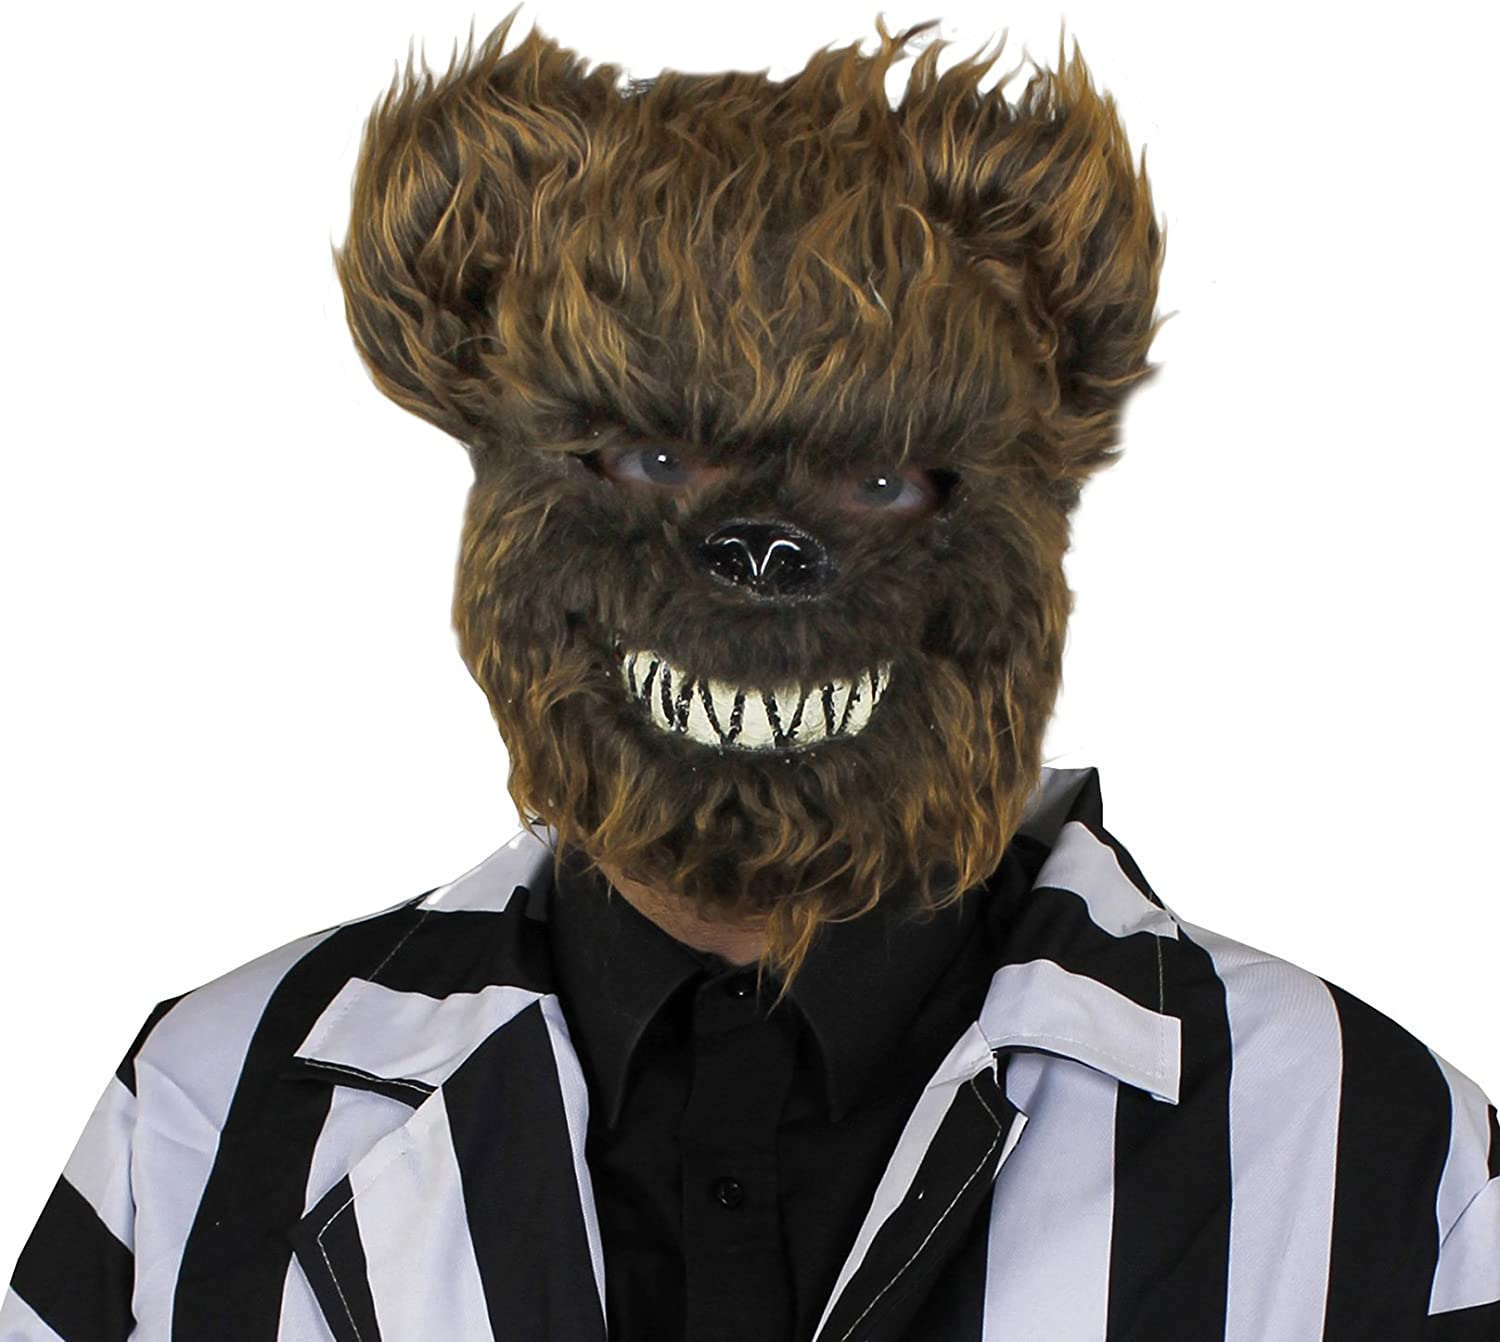 ADULT BROWN BEAR HALLOWEEN MASK  PERFECT ACCESSORY FOR CREEPY HALLOWEEN FANCY DRESS  ADULT ONE SIZE FITS MOST  PACK OF 6